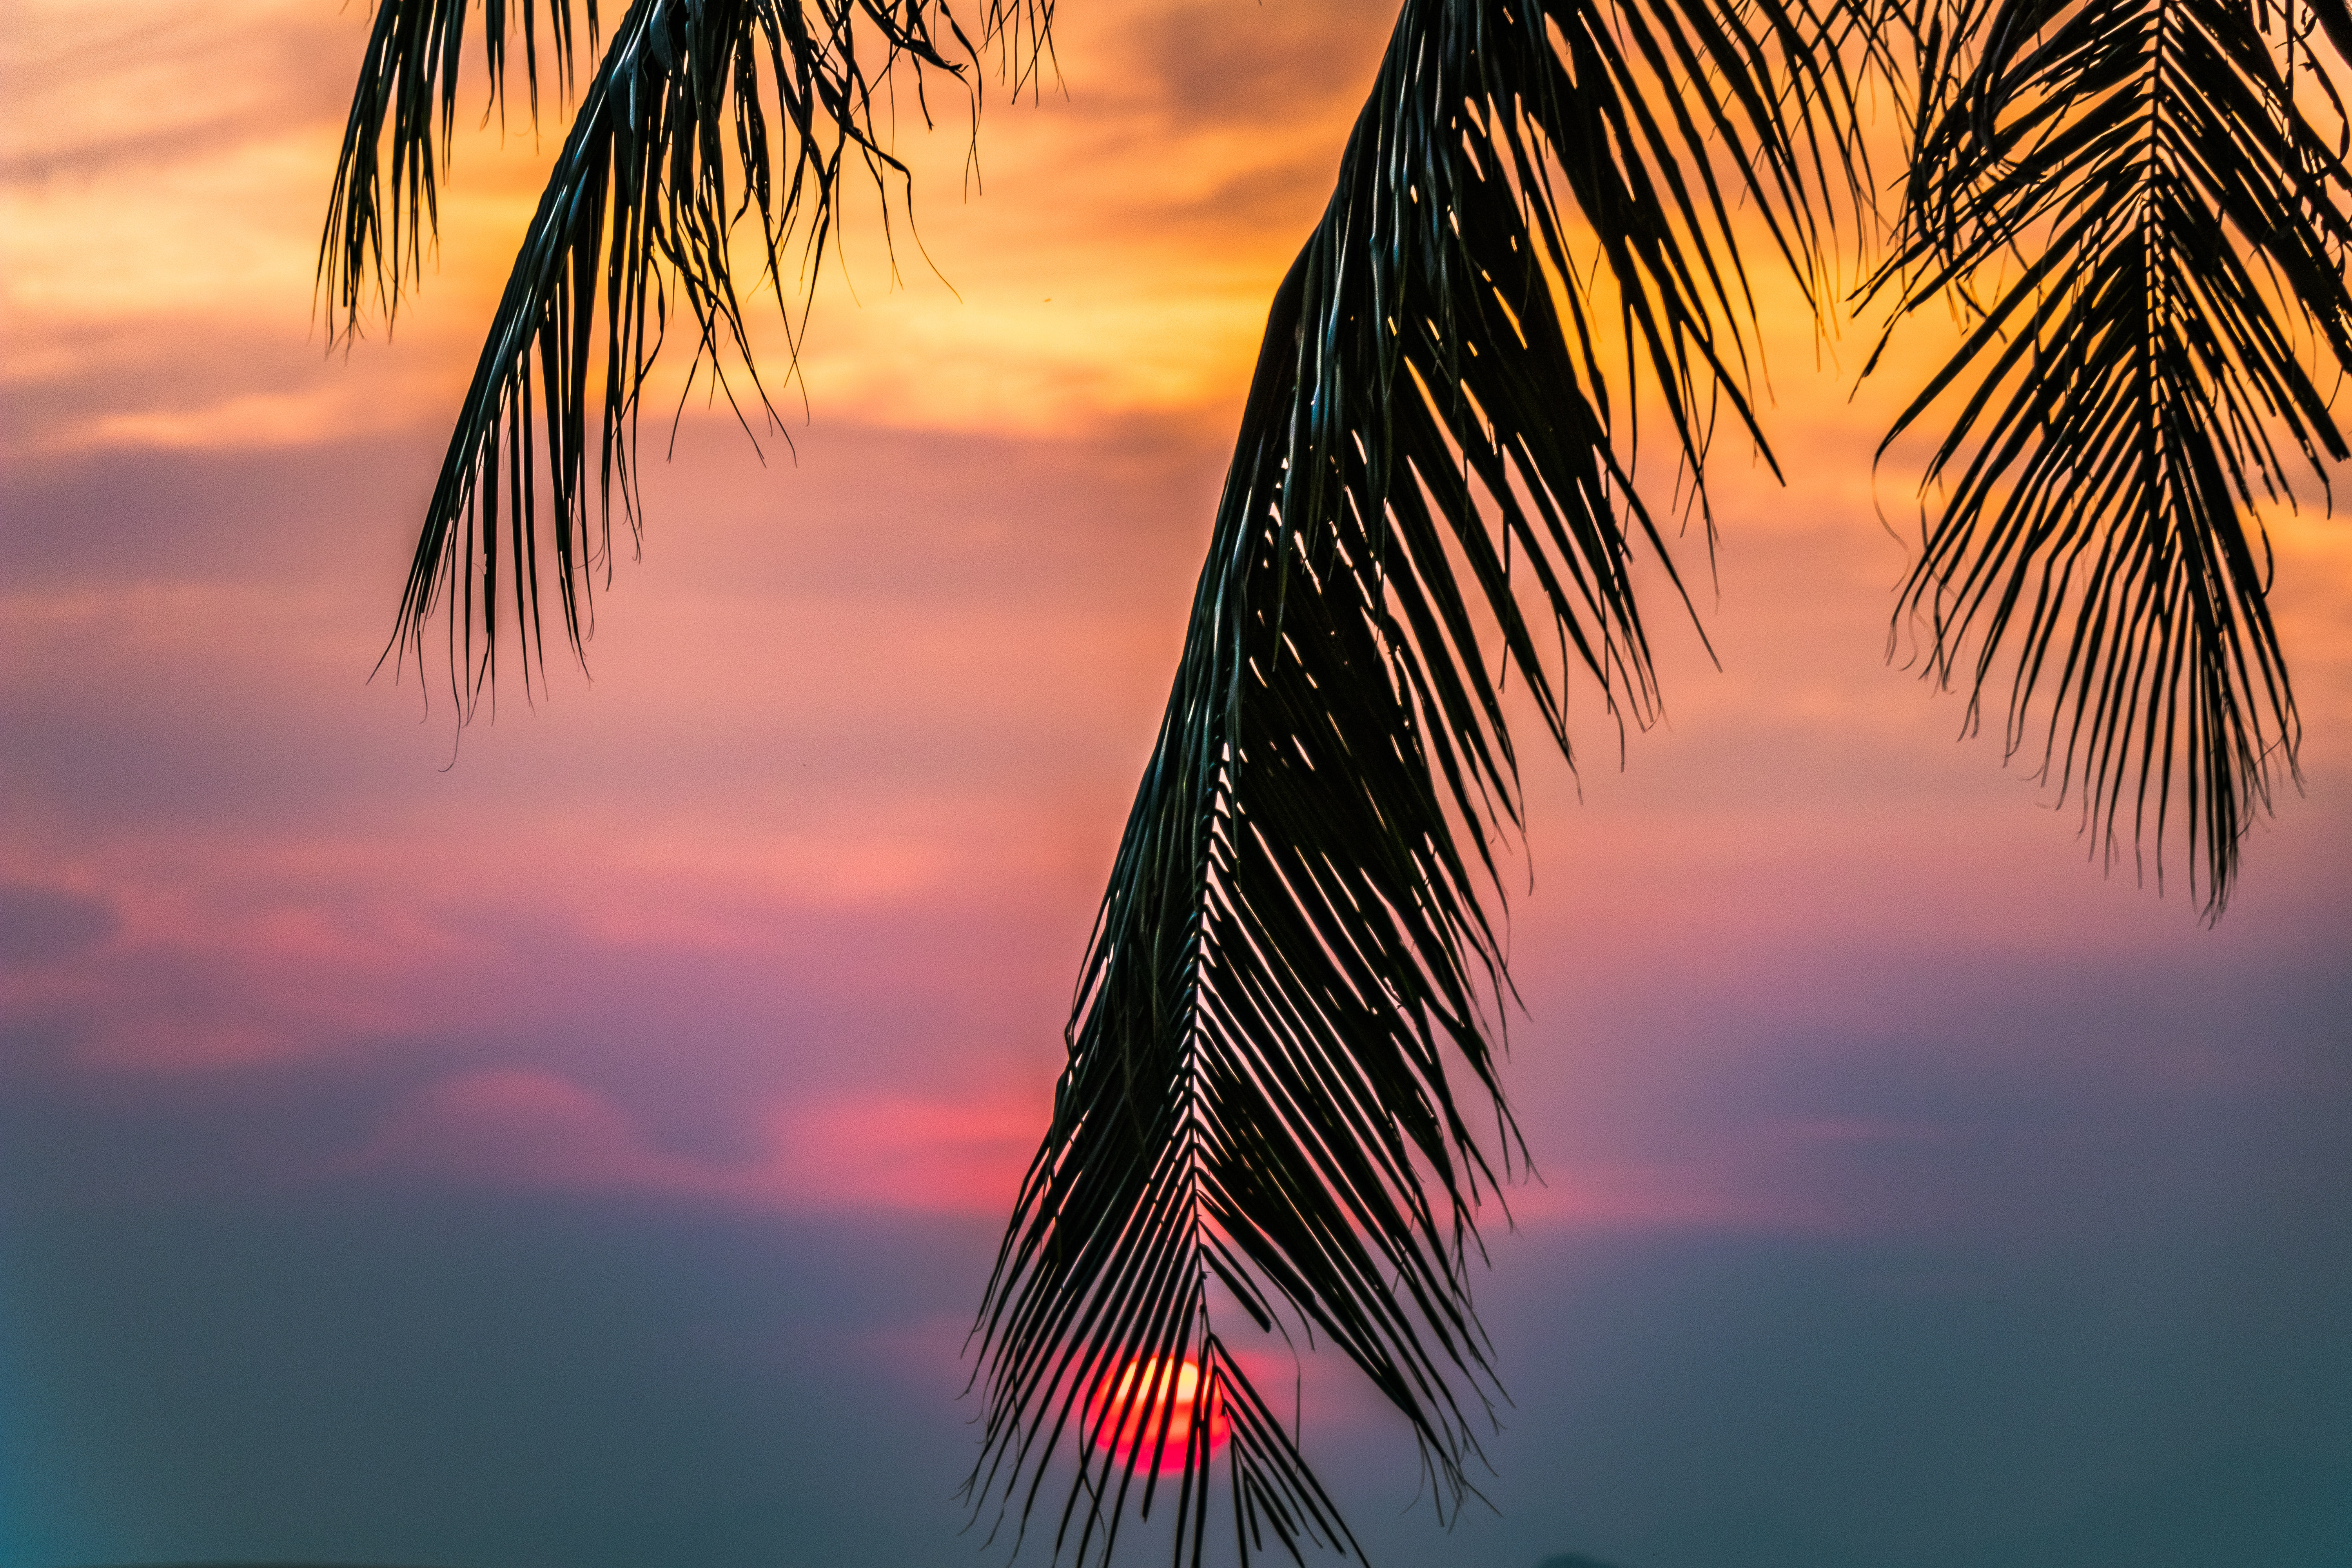 Sun covered with coconut tree during sunrise photo